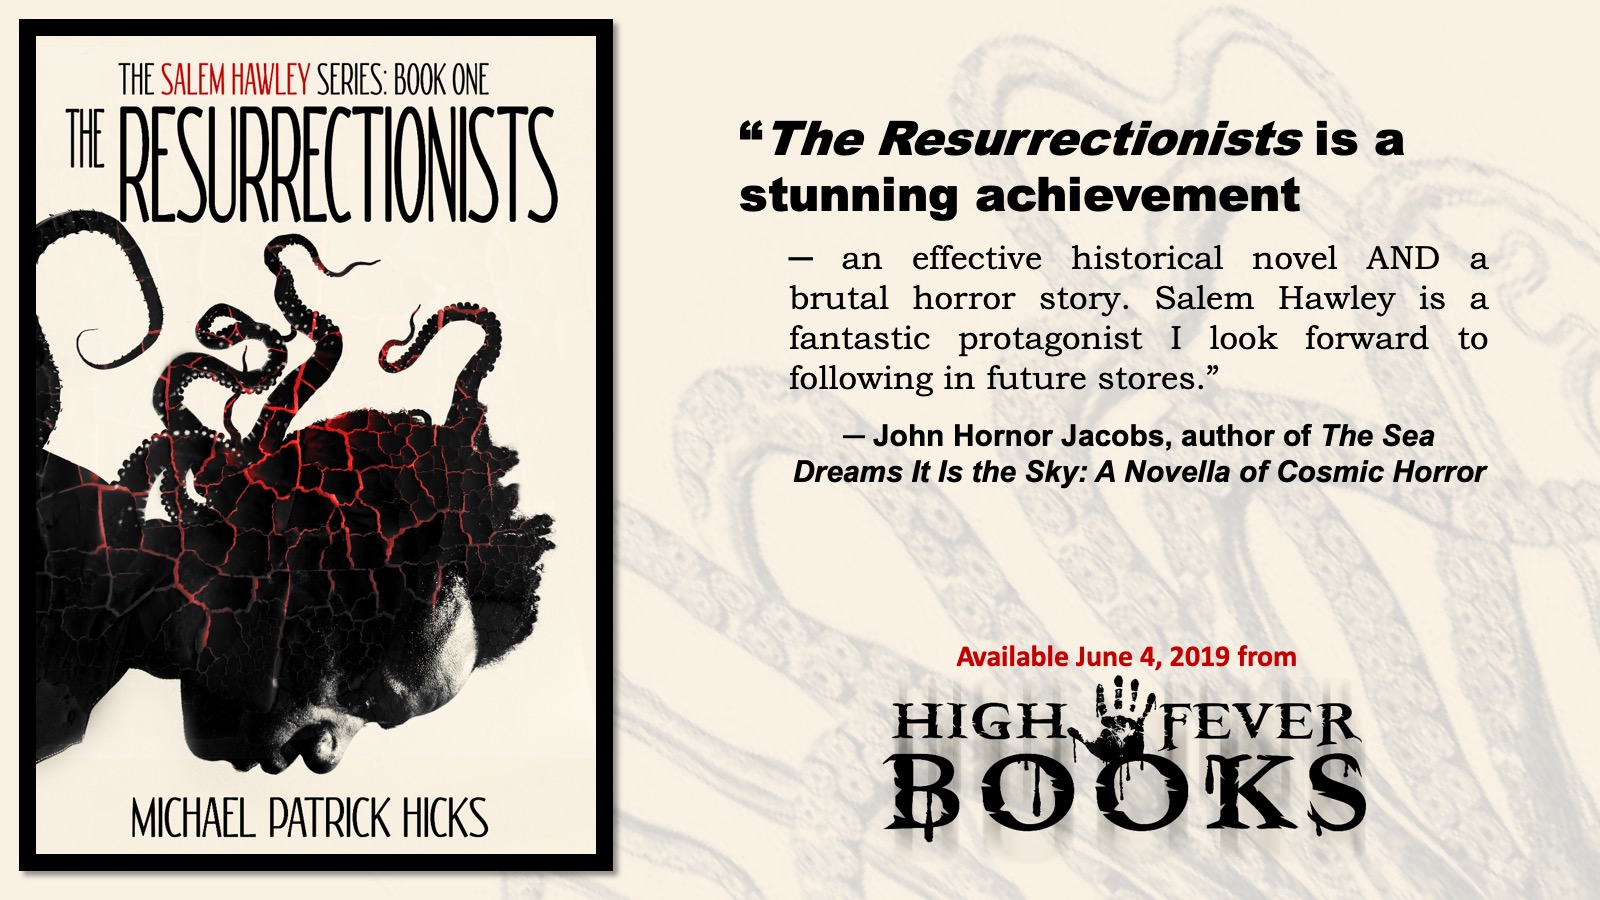 The Resurrectionists Blurb_John Hornor Jacobs.jpg